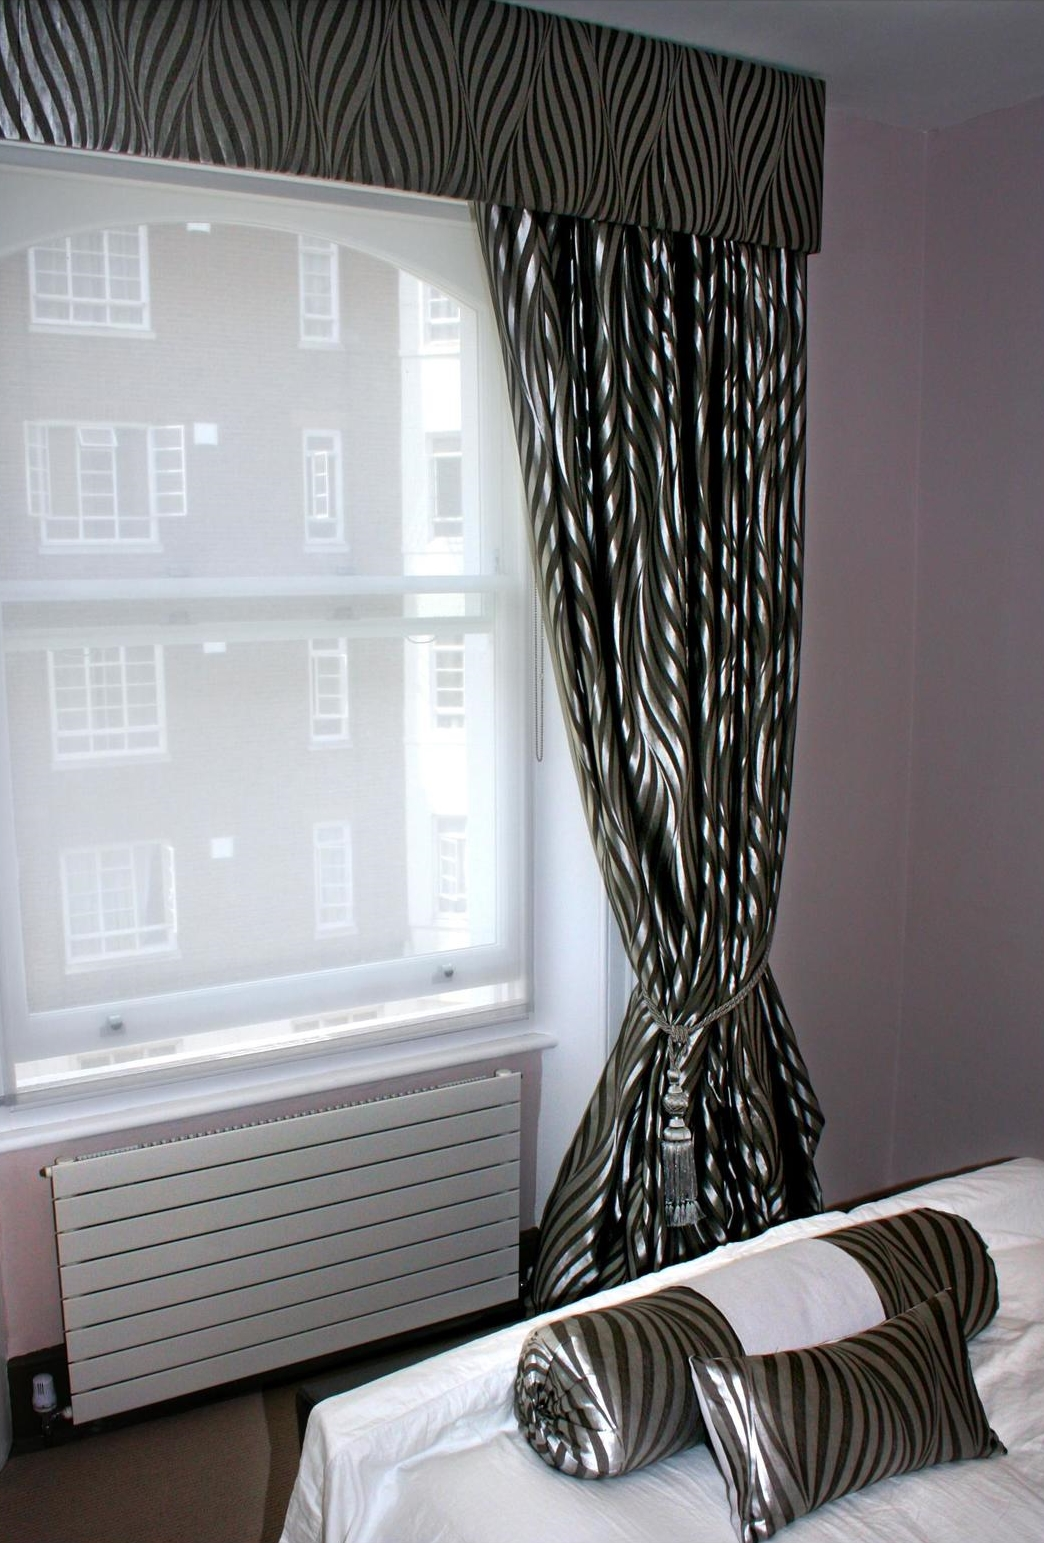 Full-length blackout blinds in a shiny, black and grey, zebra-print fabric